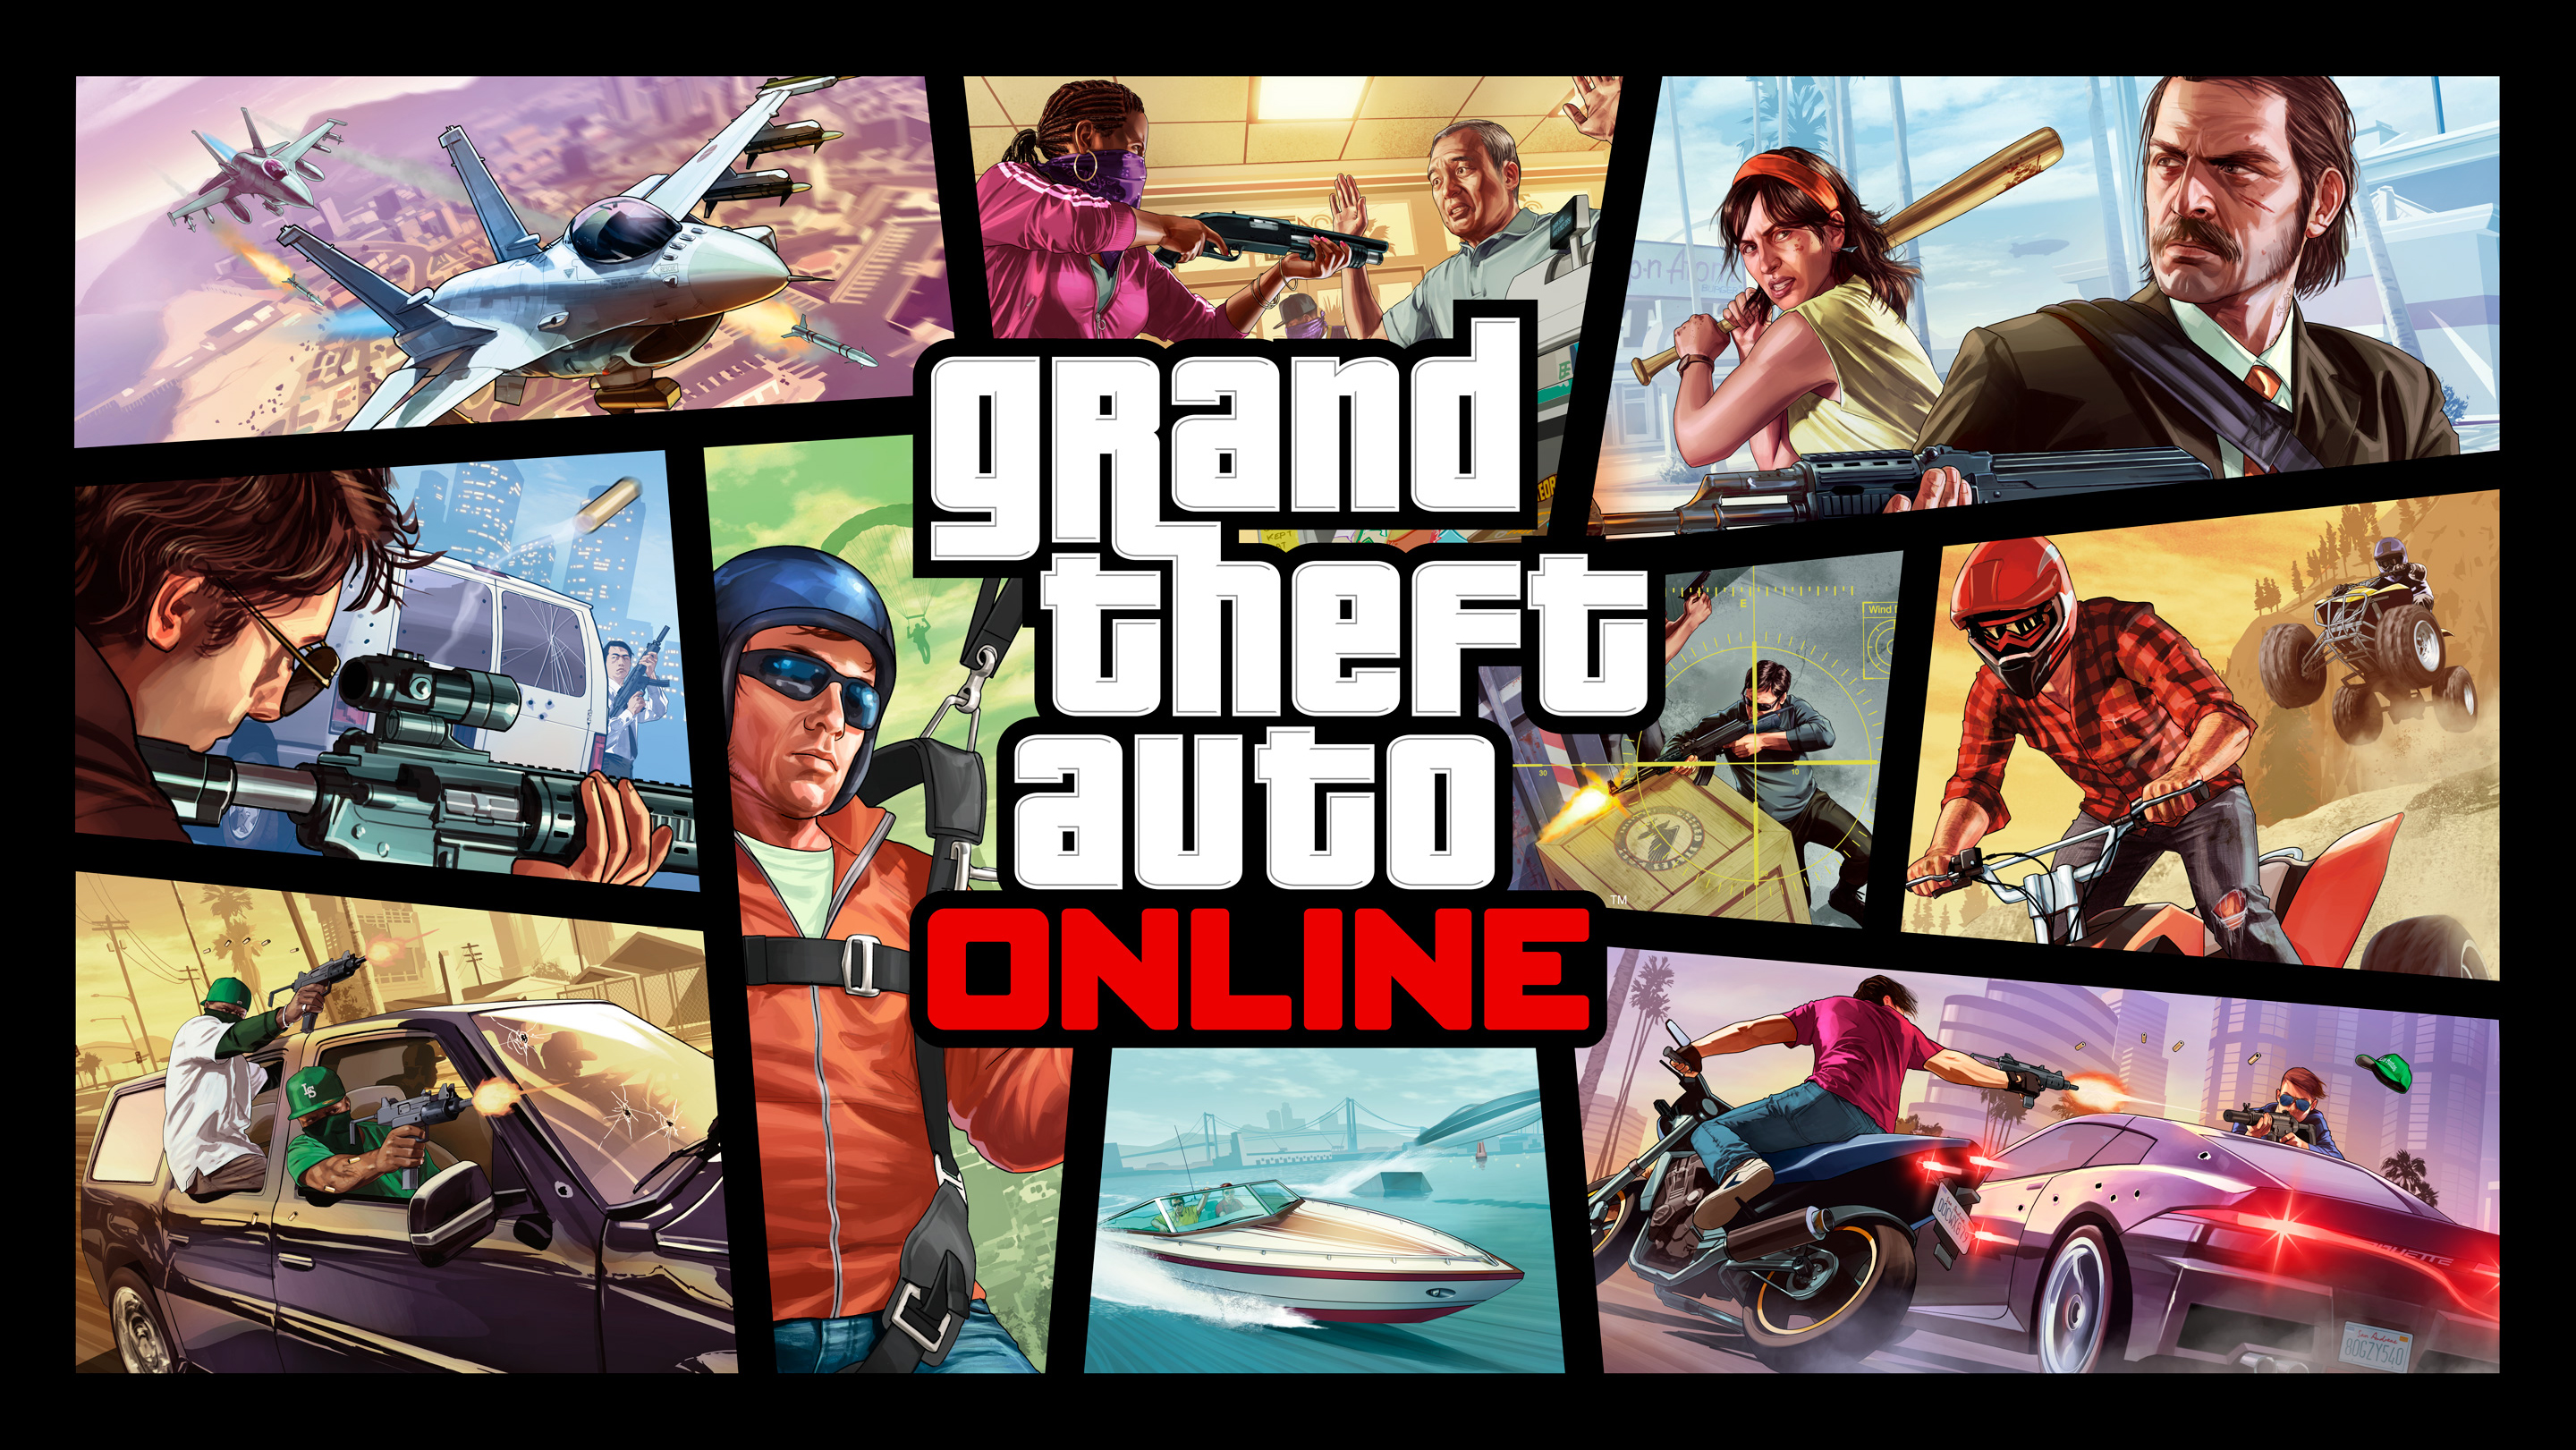 grand theft auto 5 ps4 gameplay 1080p resolution